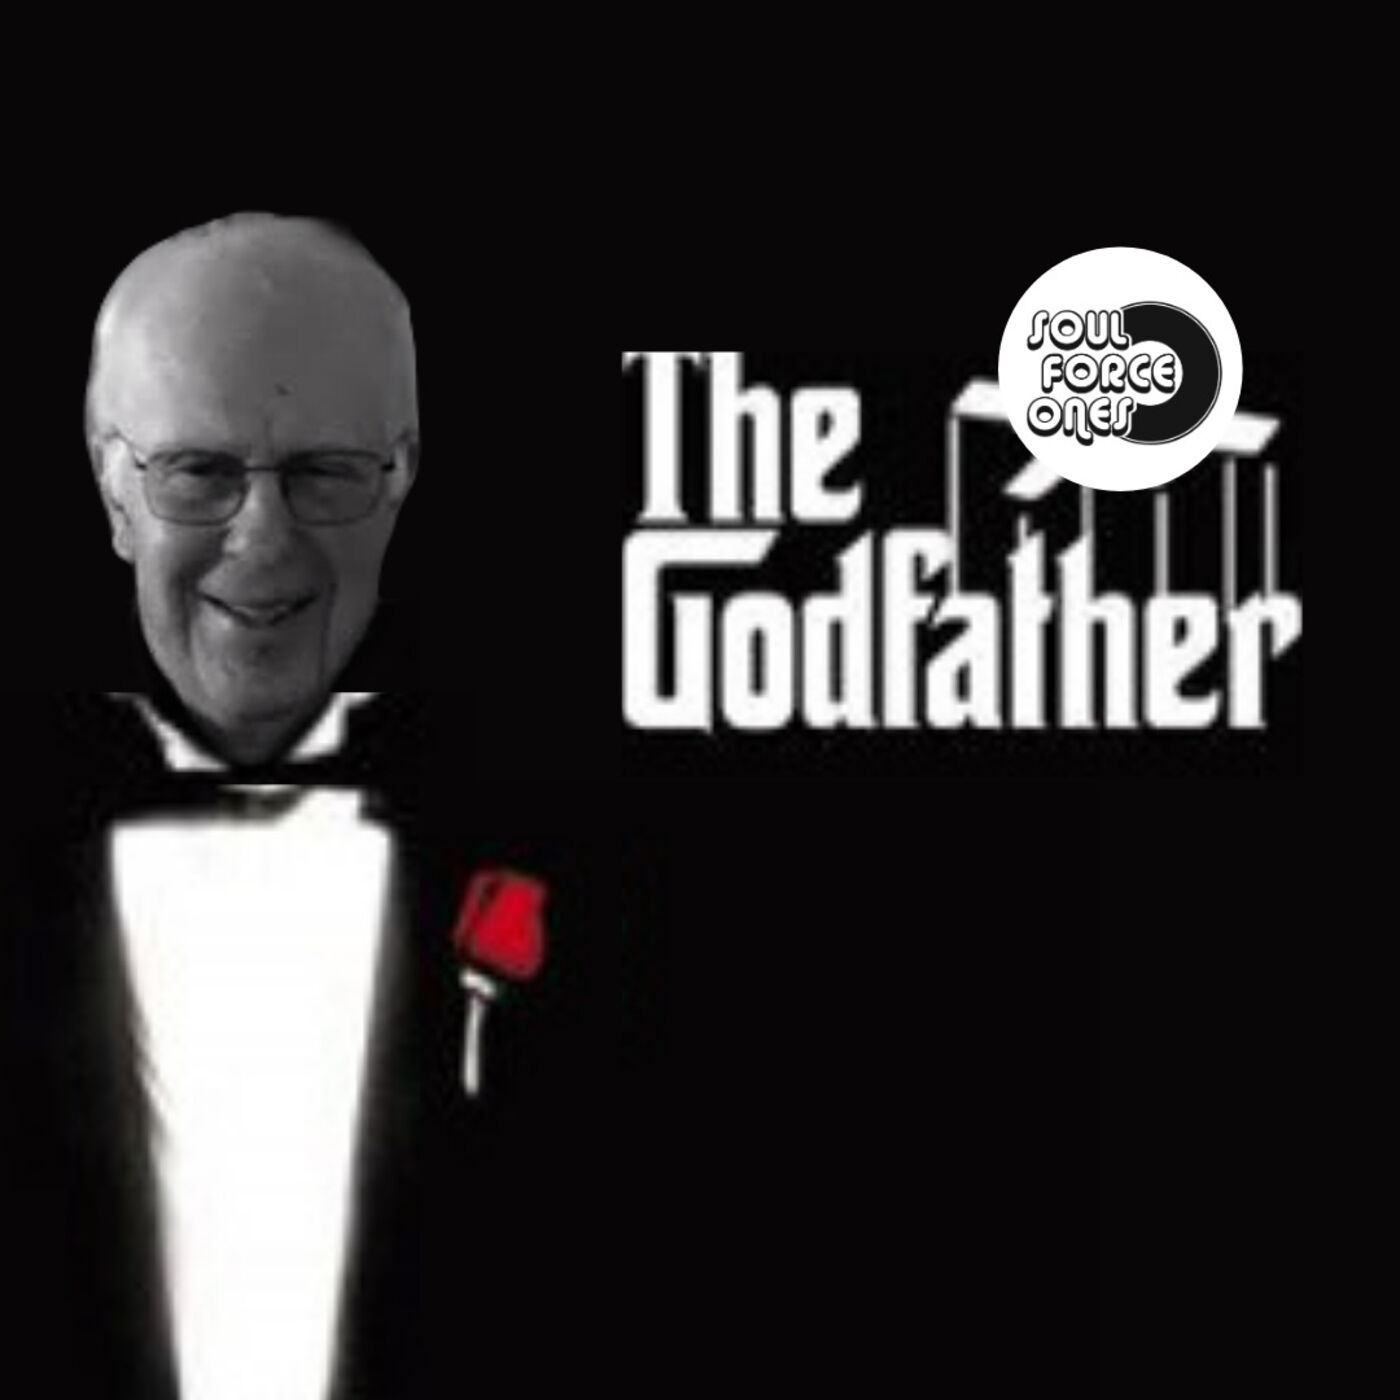 19. The Godfather feat. Parker Palmer